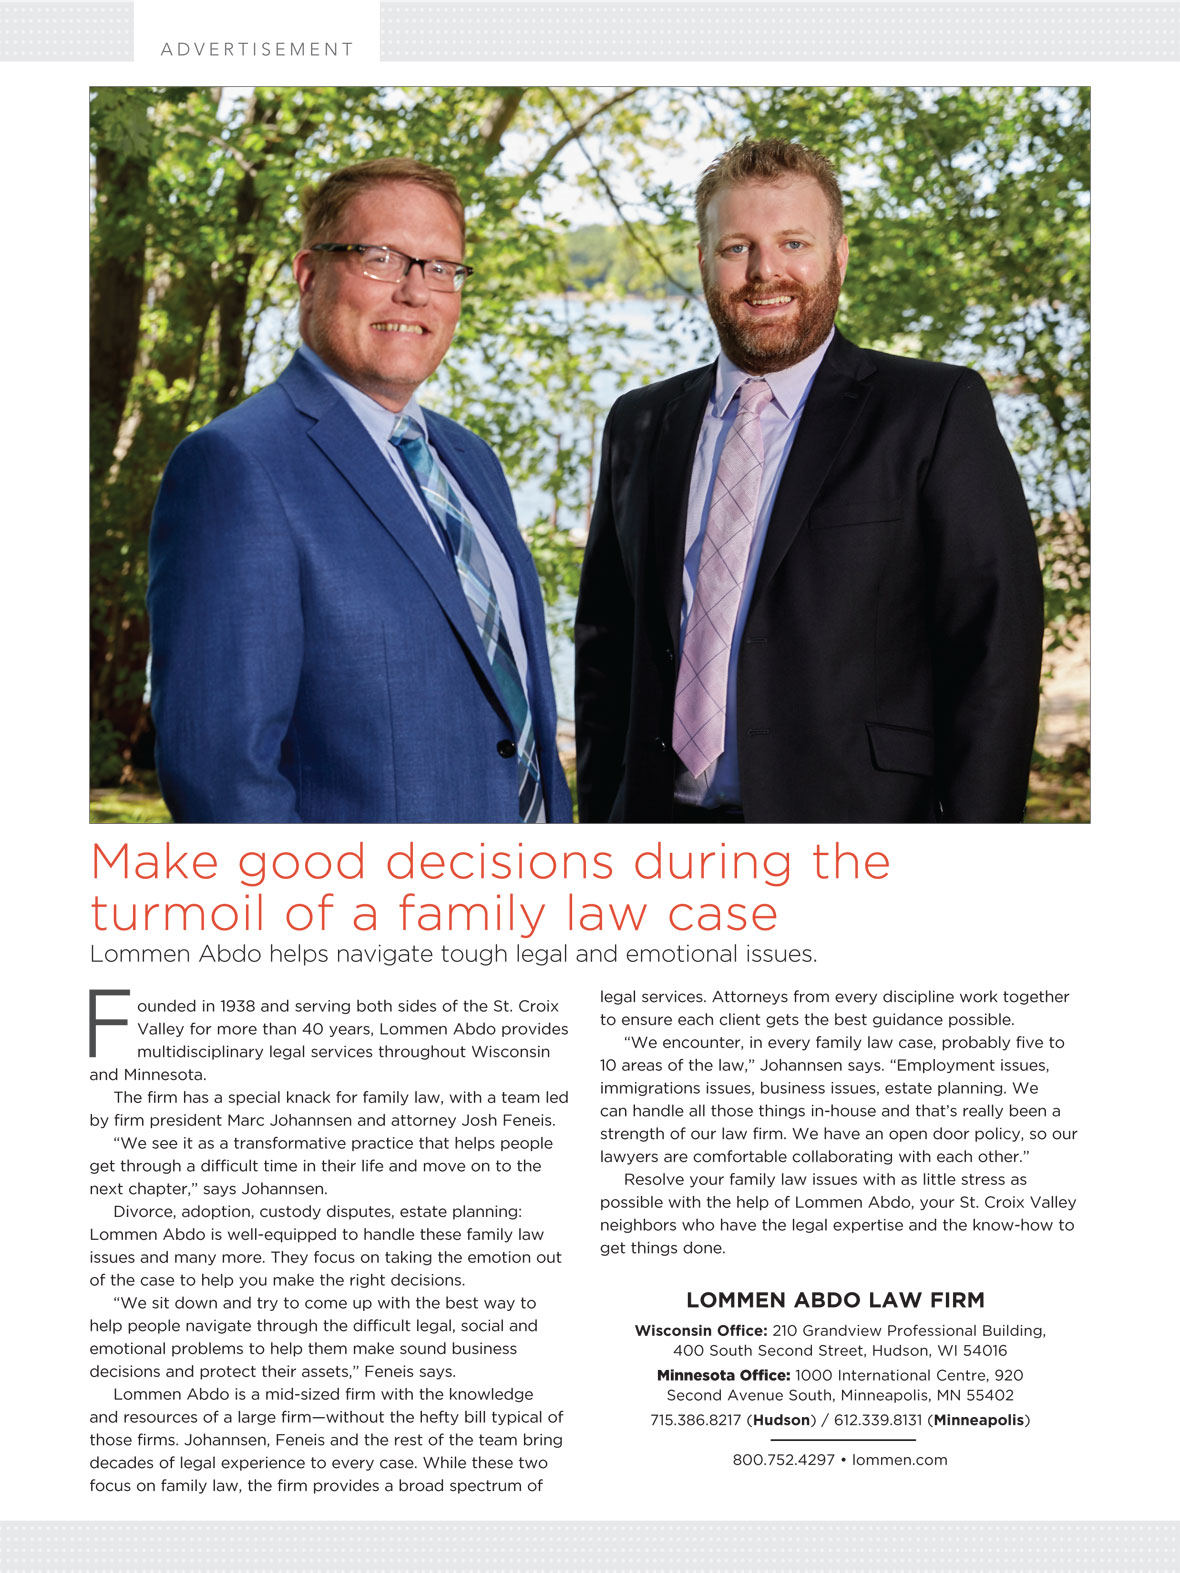 Business Profile of Lommen Abdo's Family Law Group, including Marc Johannsen and Josh Feneis